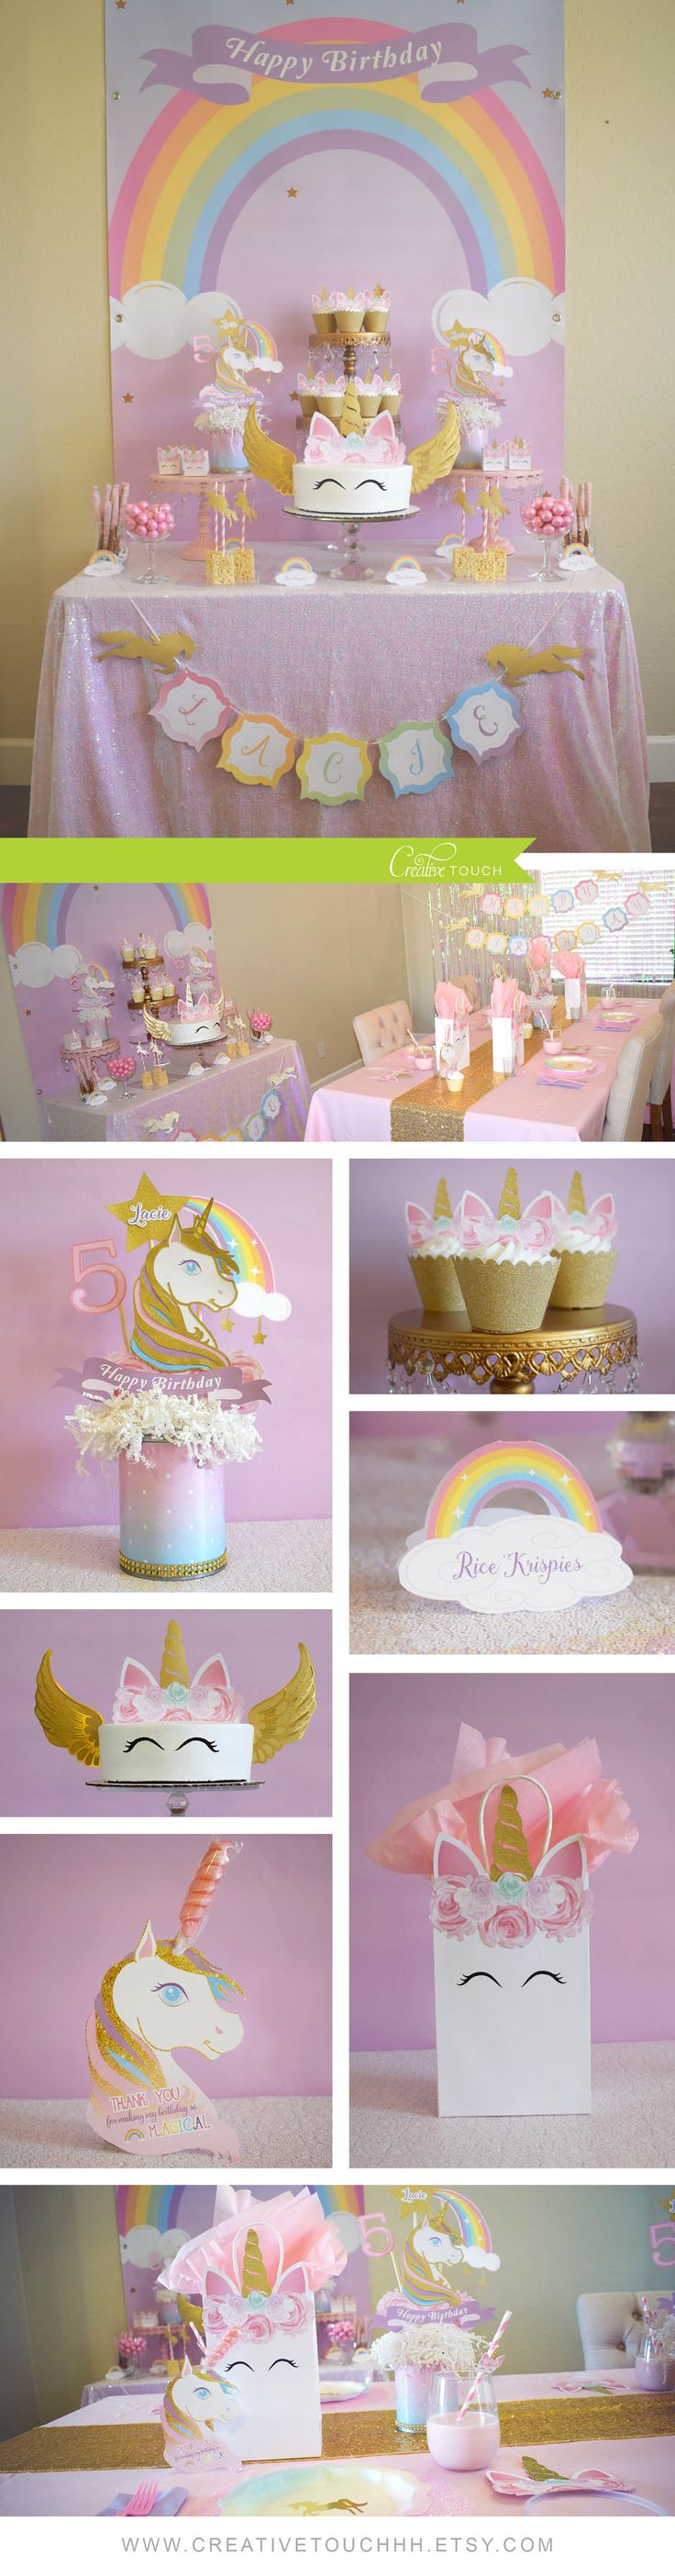 Unicorn Birthday Party, Unicorn Party, Unicorn Cake, Unicorn Cupcakes, Unicorn Topper, Unicorn Banner, Girl Birthday Party, Girl Party, Girl Birthday, Party Ideas, Girl party Ideas, Girl Party Themes, Party Themes, Cake, Cupcake, Unicorn Decorations, Unicorn Celebration, Unicorn Backdrop, Unicorn Buffet table, Unicorn Candy Table, Unicorn Centerpieces, Unicorn Favor Tags, Unicorn Favor Bags, Unicorn Party Favors, Unicorn Party Supplies